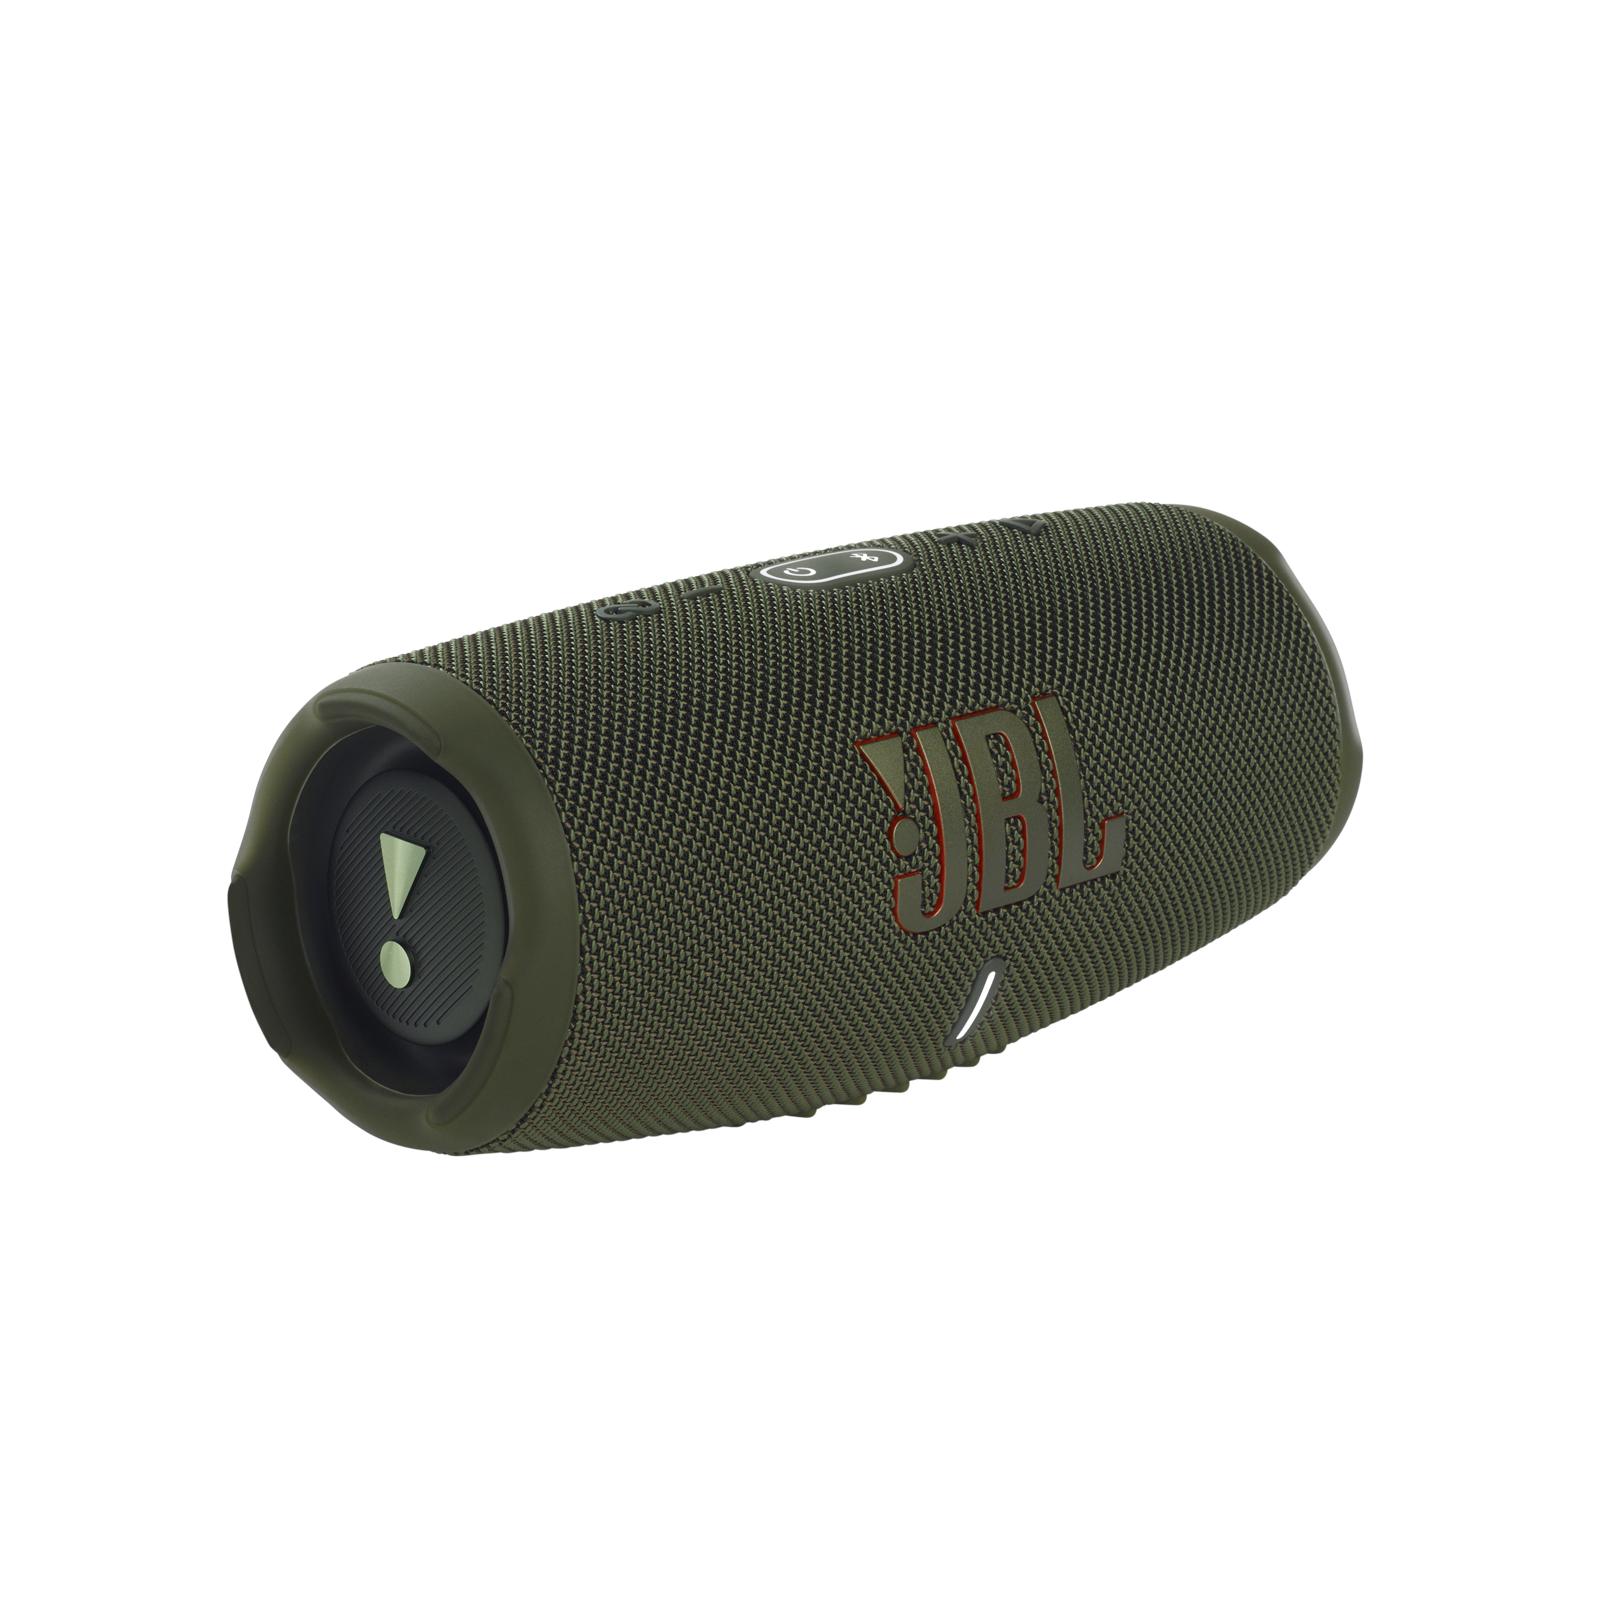 JBL CHARGE 5 - Forest Green - Portable Waterproof Speaker with Powerbank - Hero